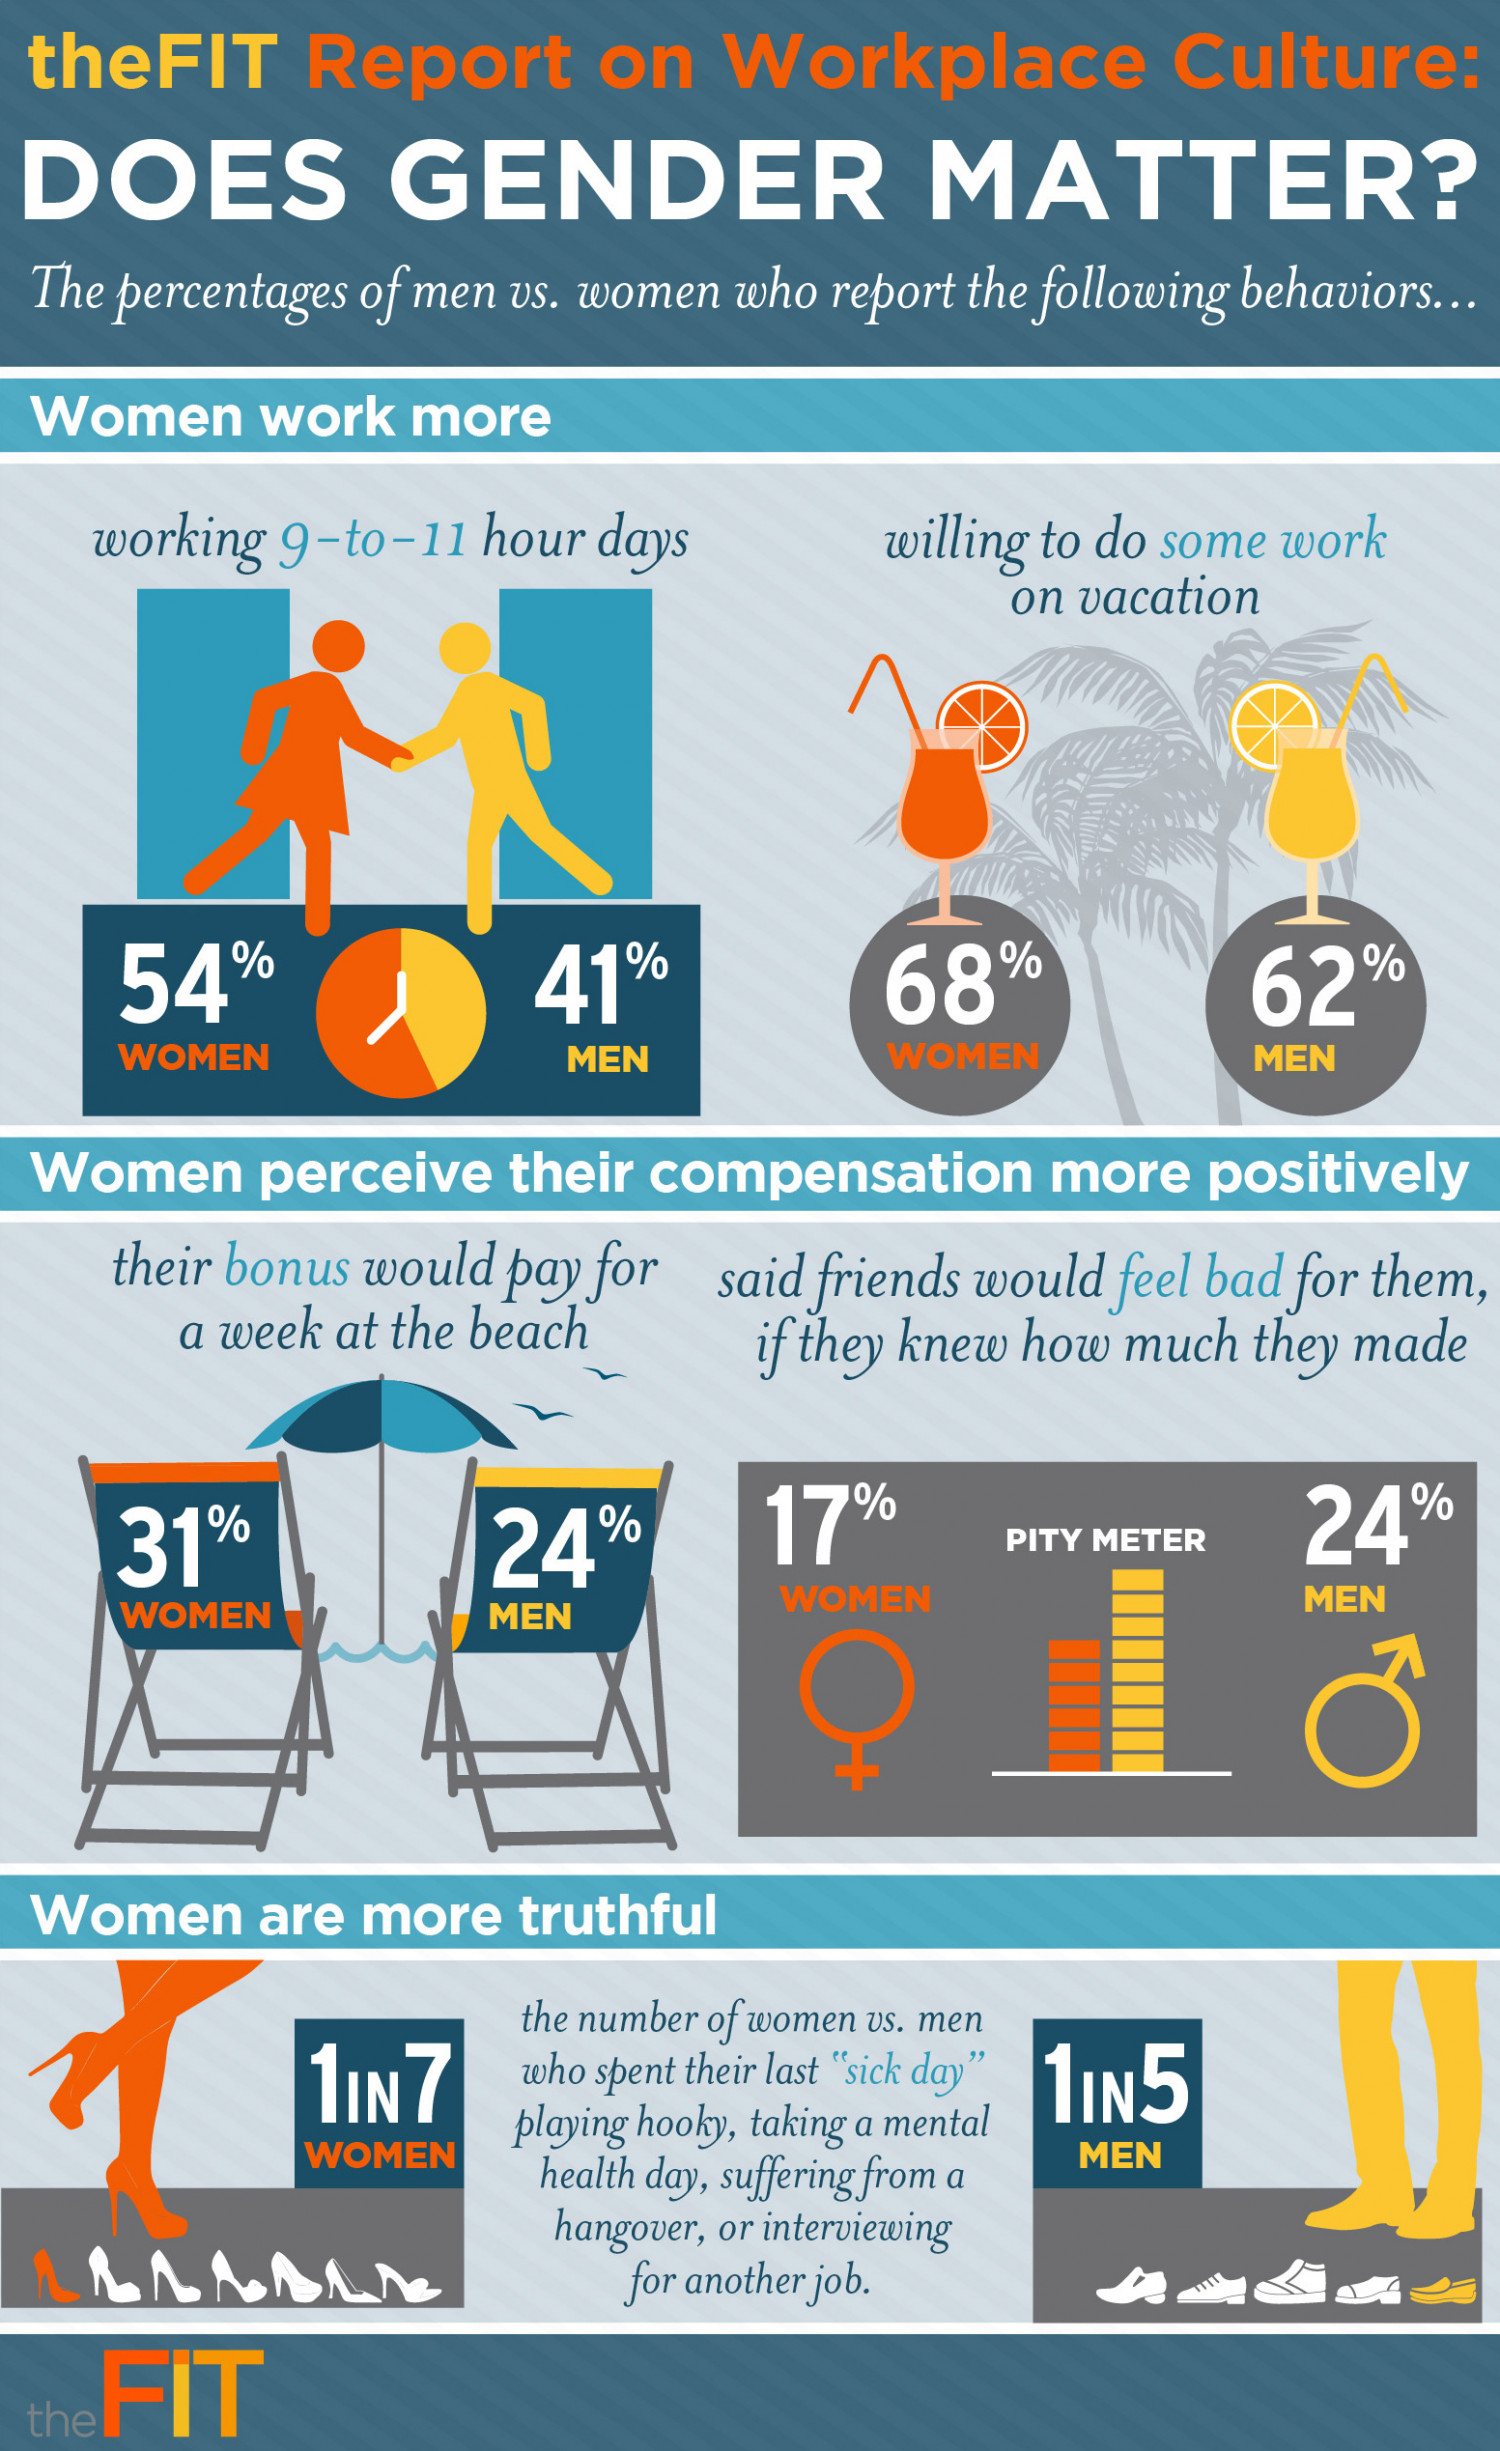 theFIT Report on Workplace Culture: Does Gender Matter Infographic